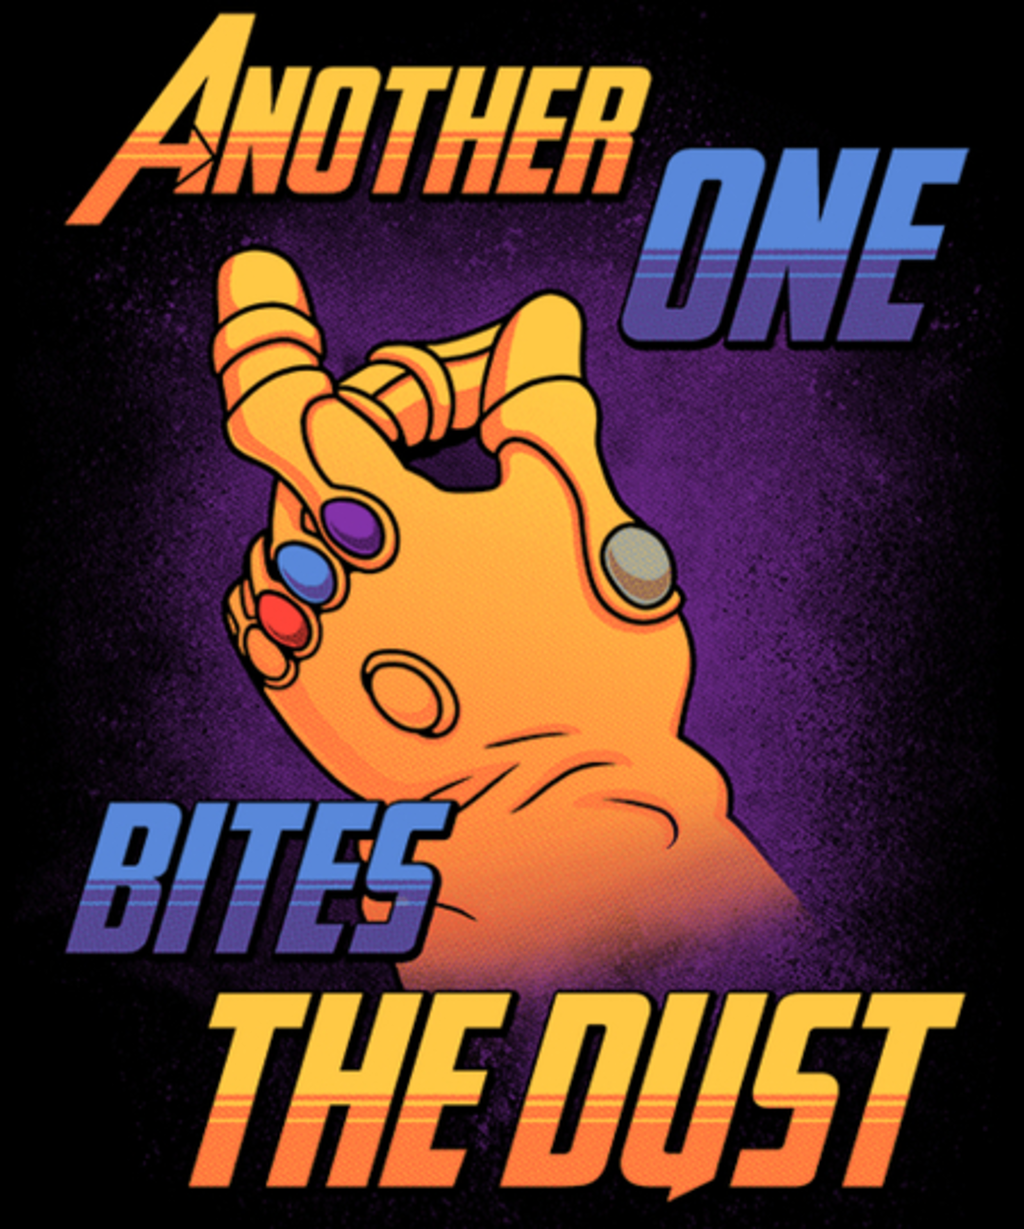 Qwertee: And Another One Gone